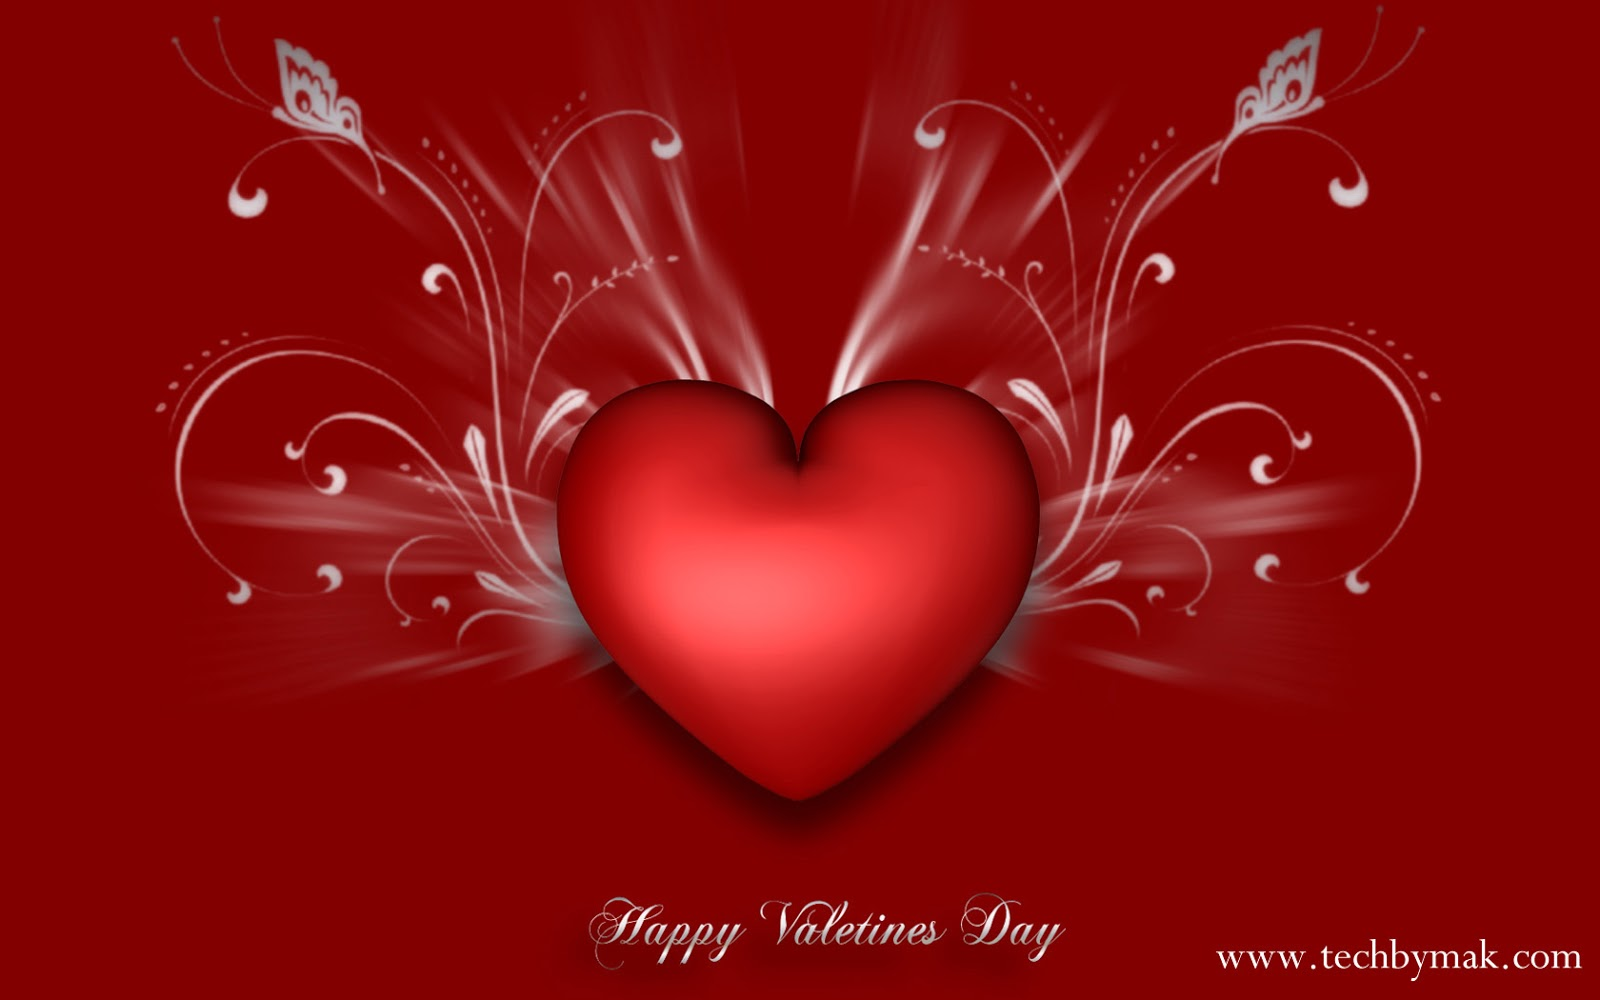 Valentines Day: Valentines Day Hearts Hd Wallpapers Pictures Photos 2013